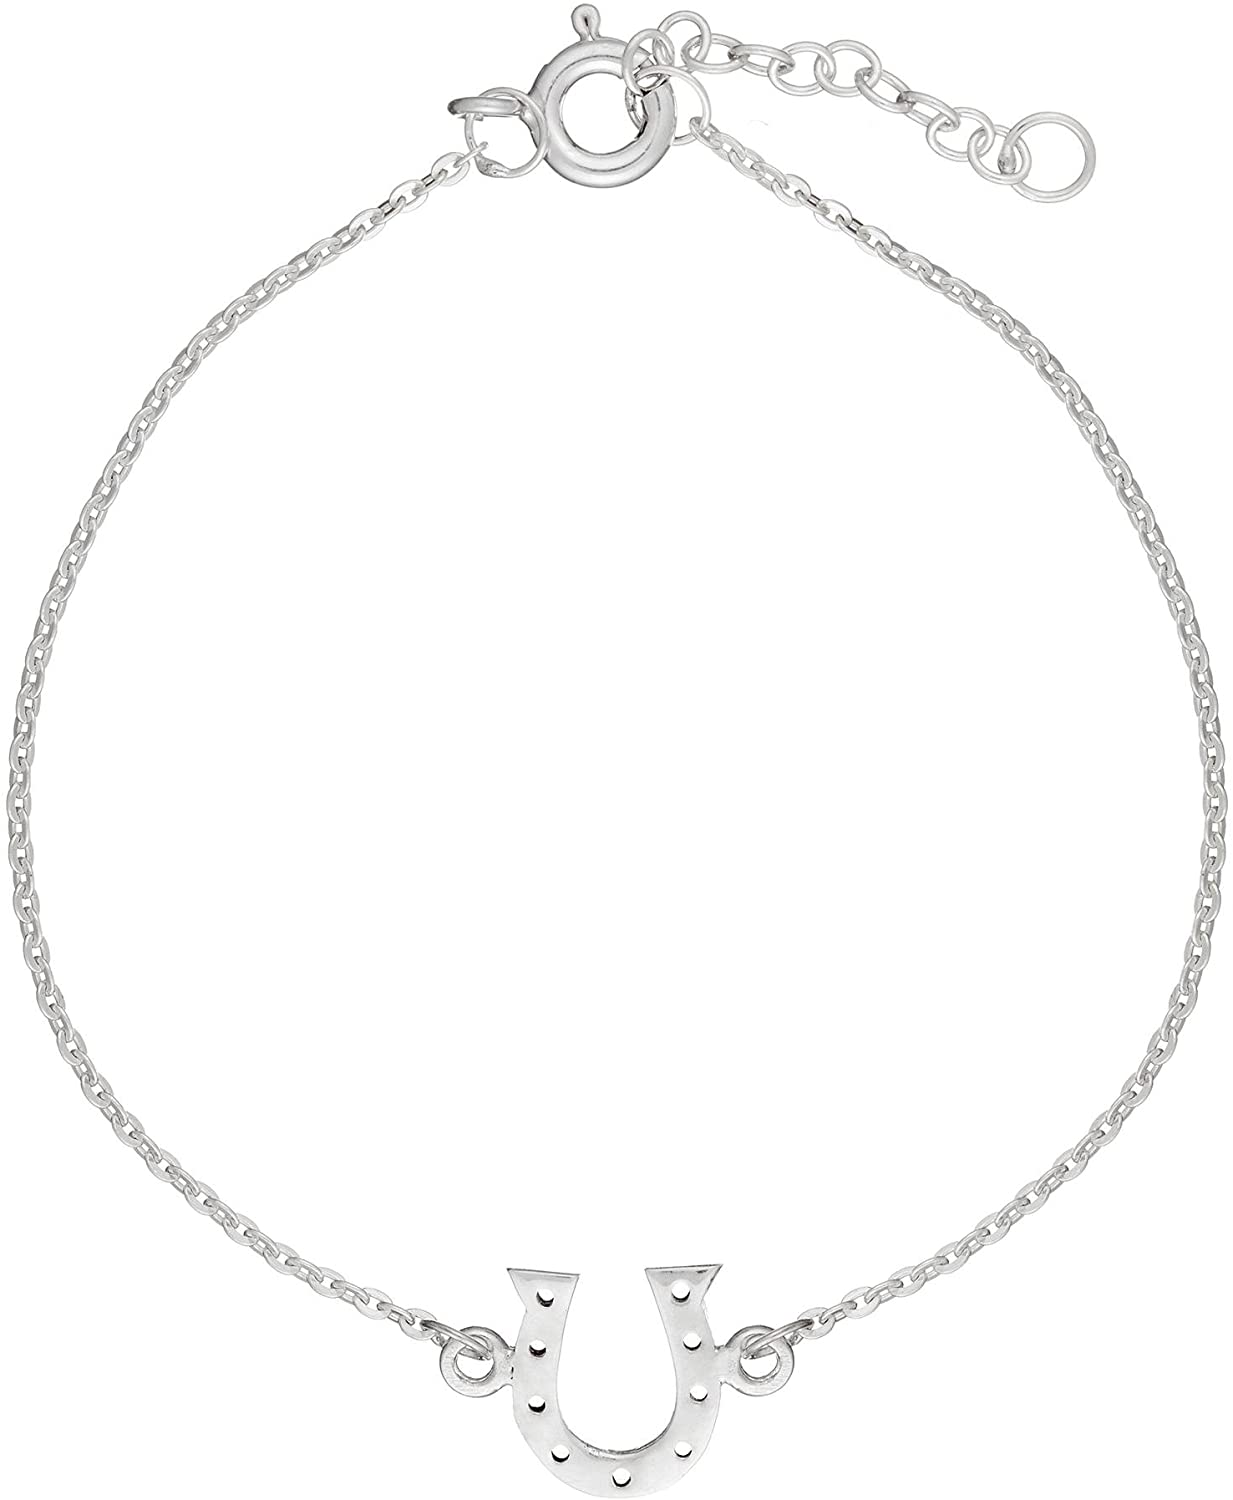 Silverly Women's .925 Sterling Silver Horseshoe Good Luck Charm Chain Bracelet, 6 + 1